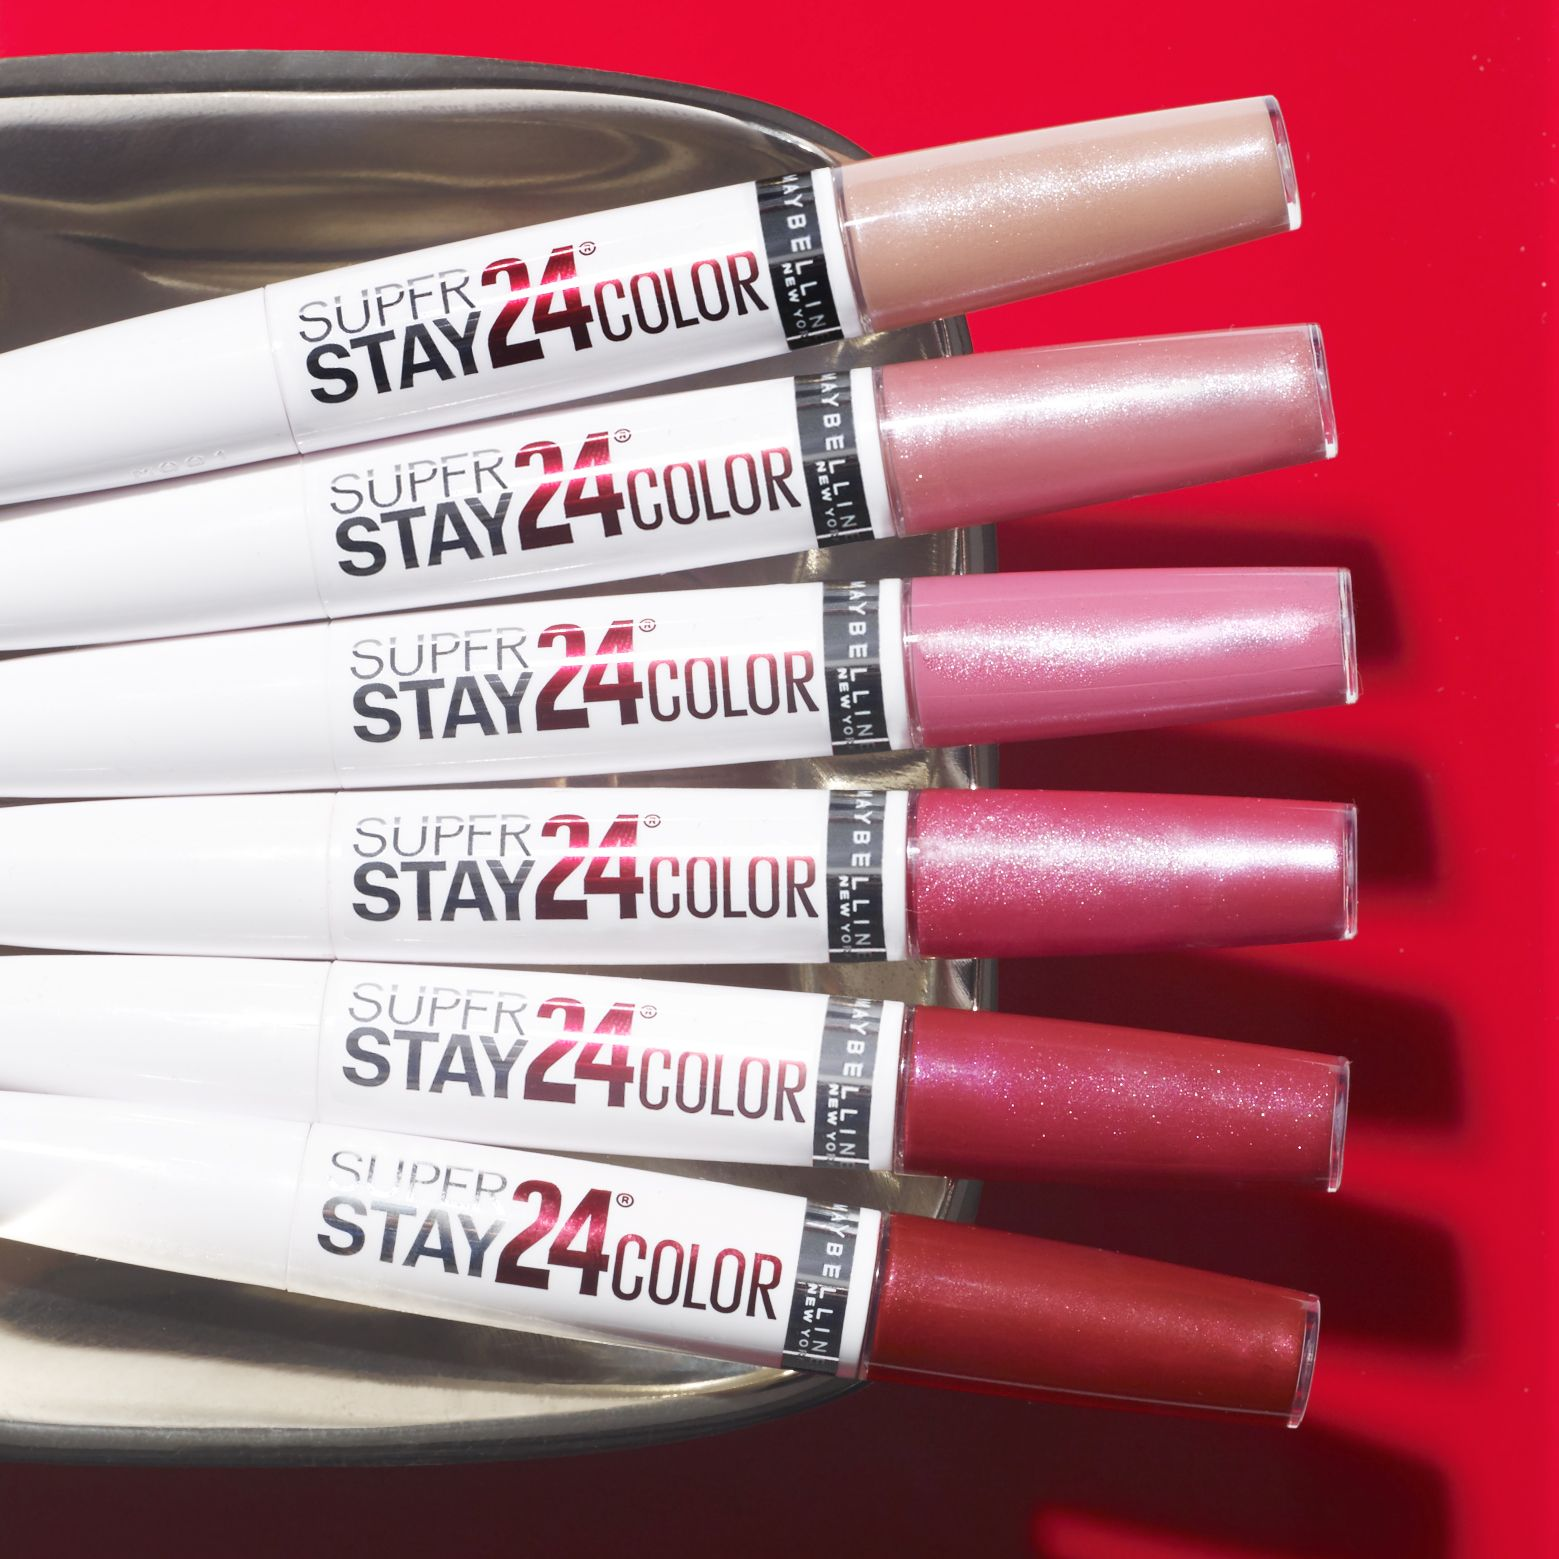 44++ Maybelline stay 24 lipstick trends